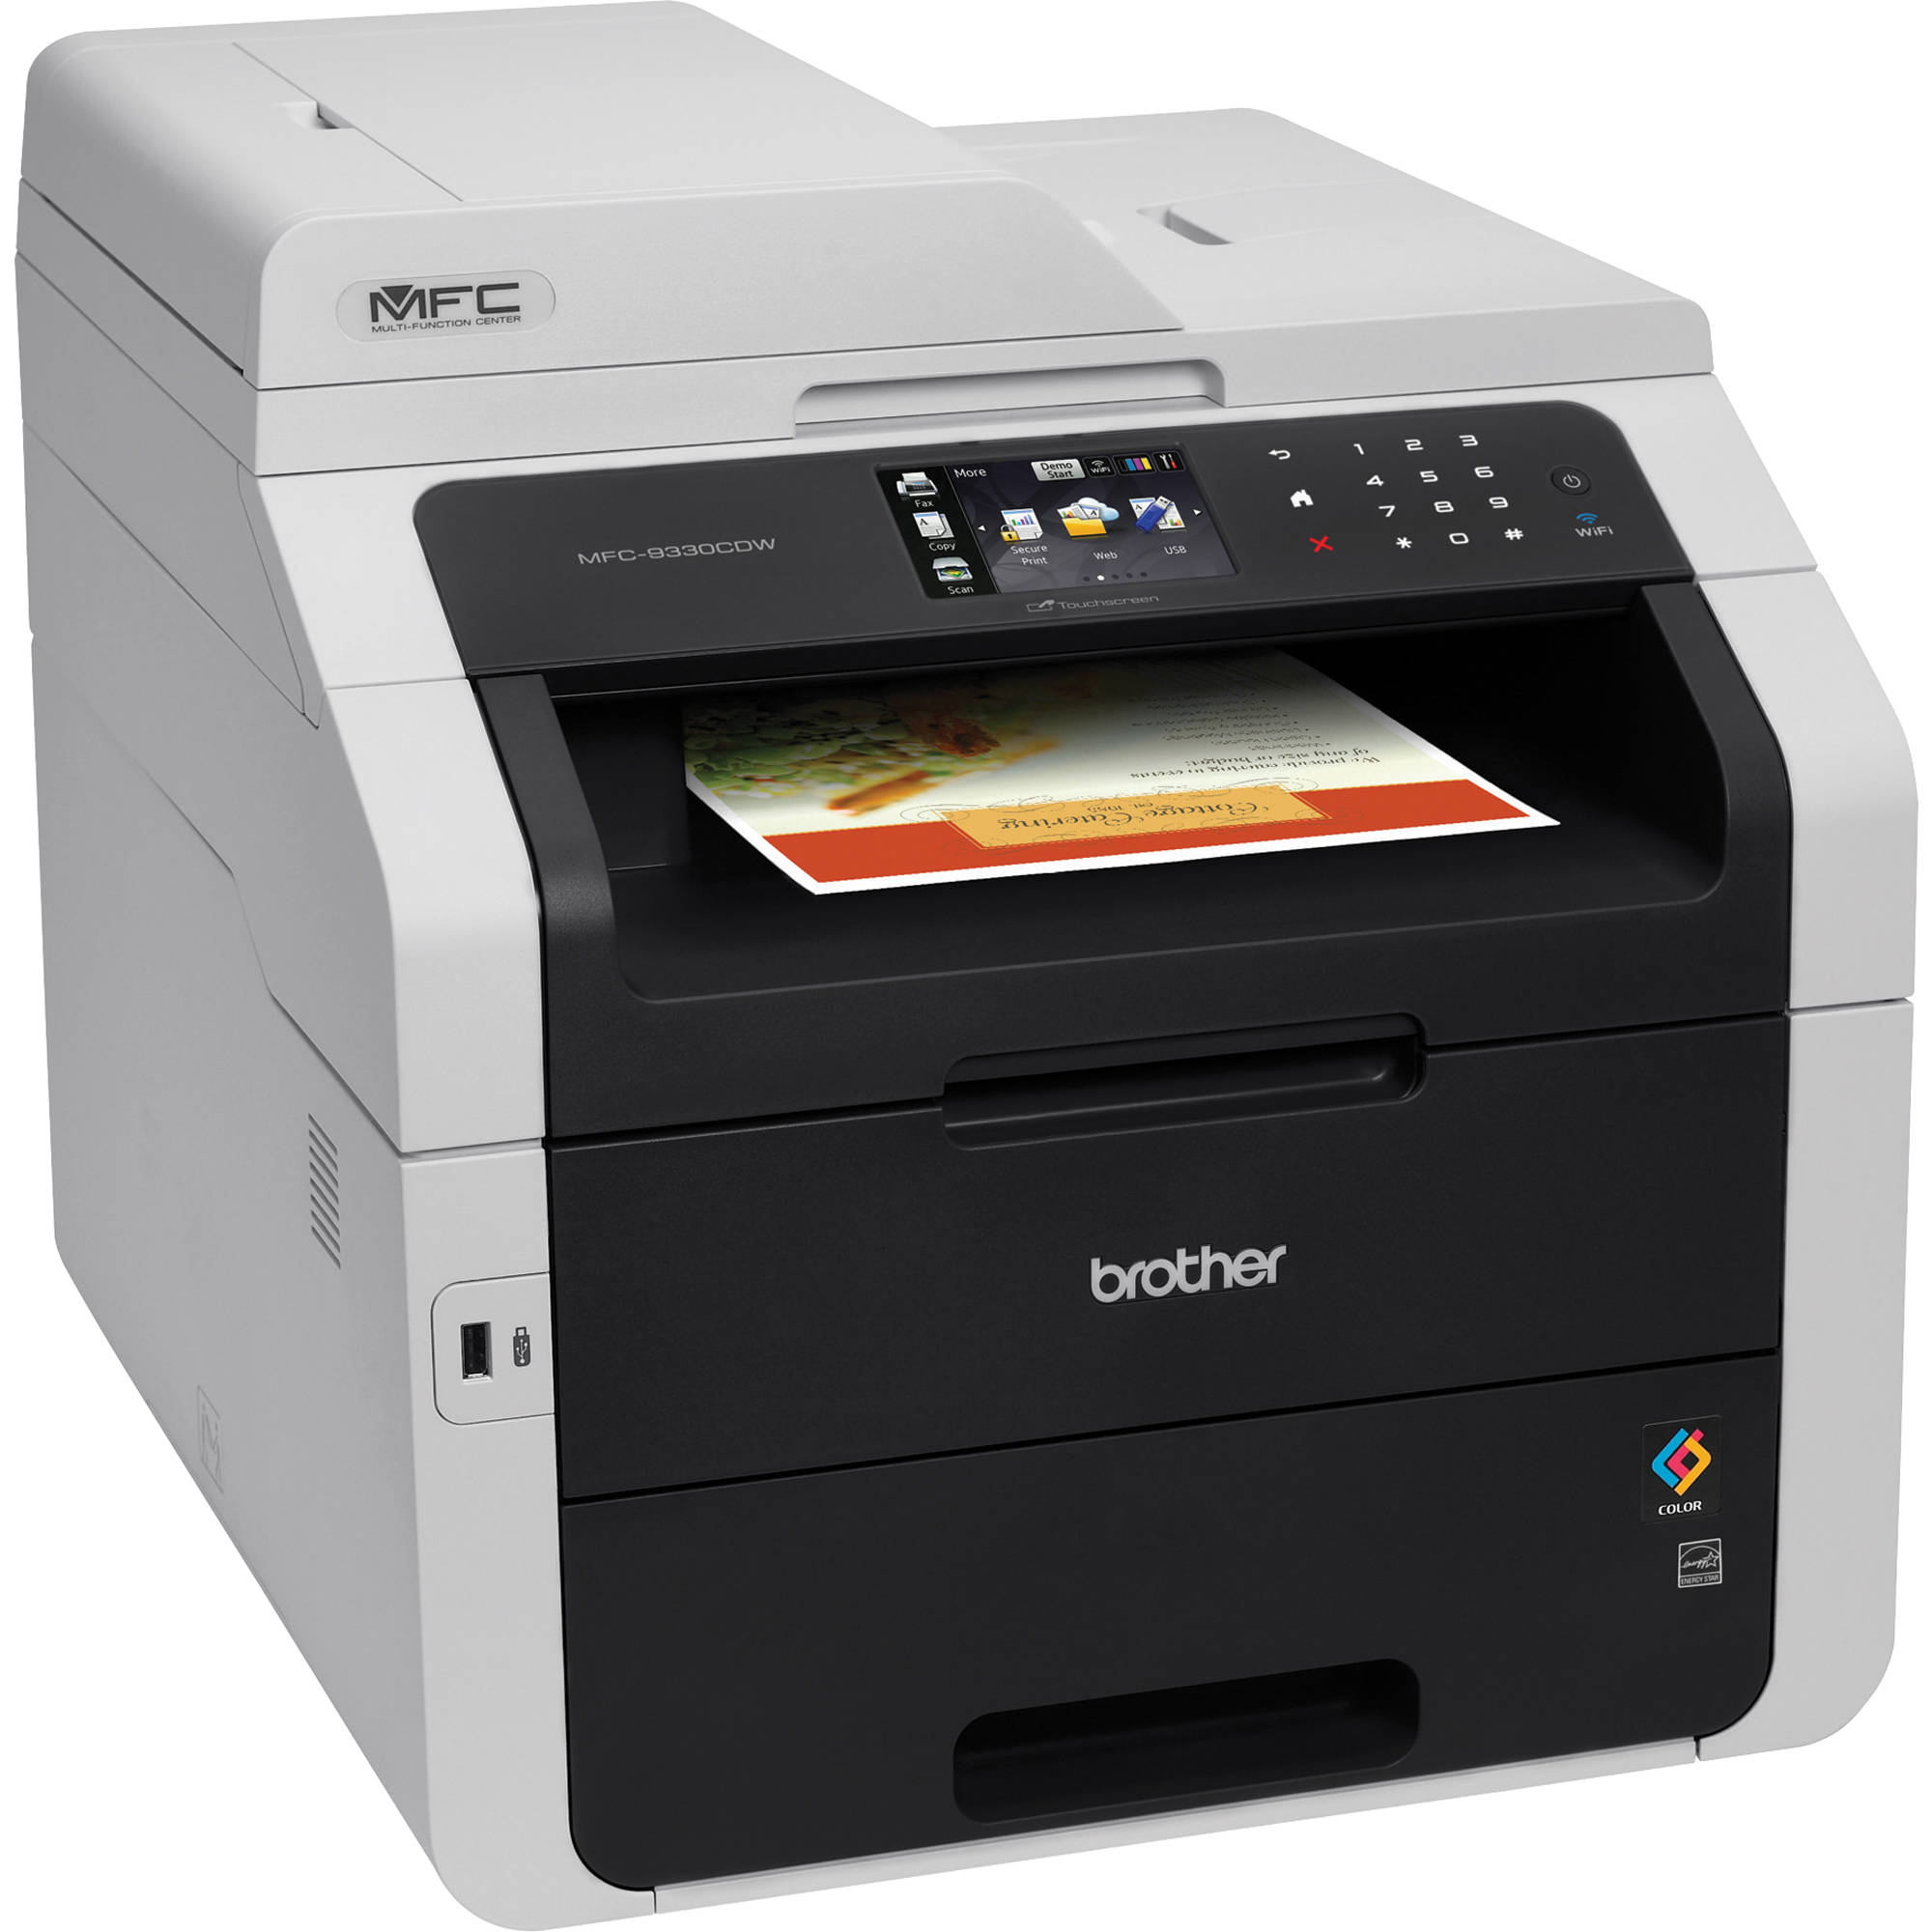 Hp m750 color printing cost per page - Brother Mfc 9330cdw Wireless Color All In One Laser Printer